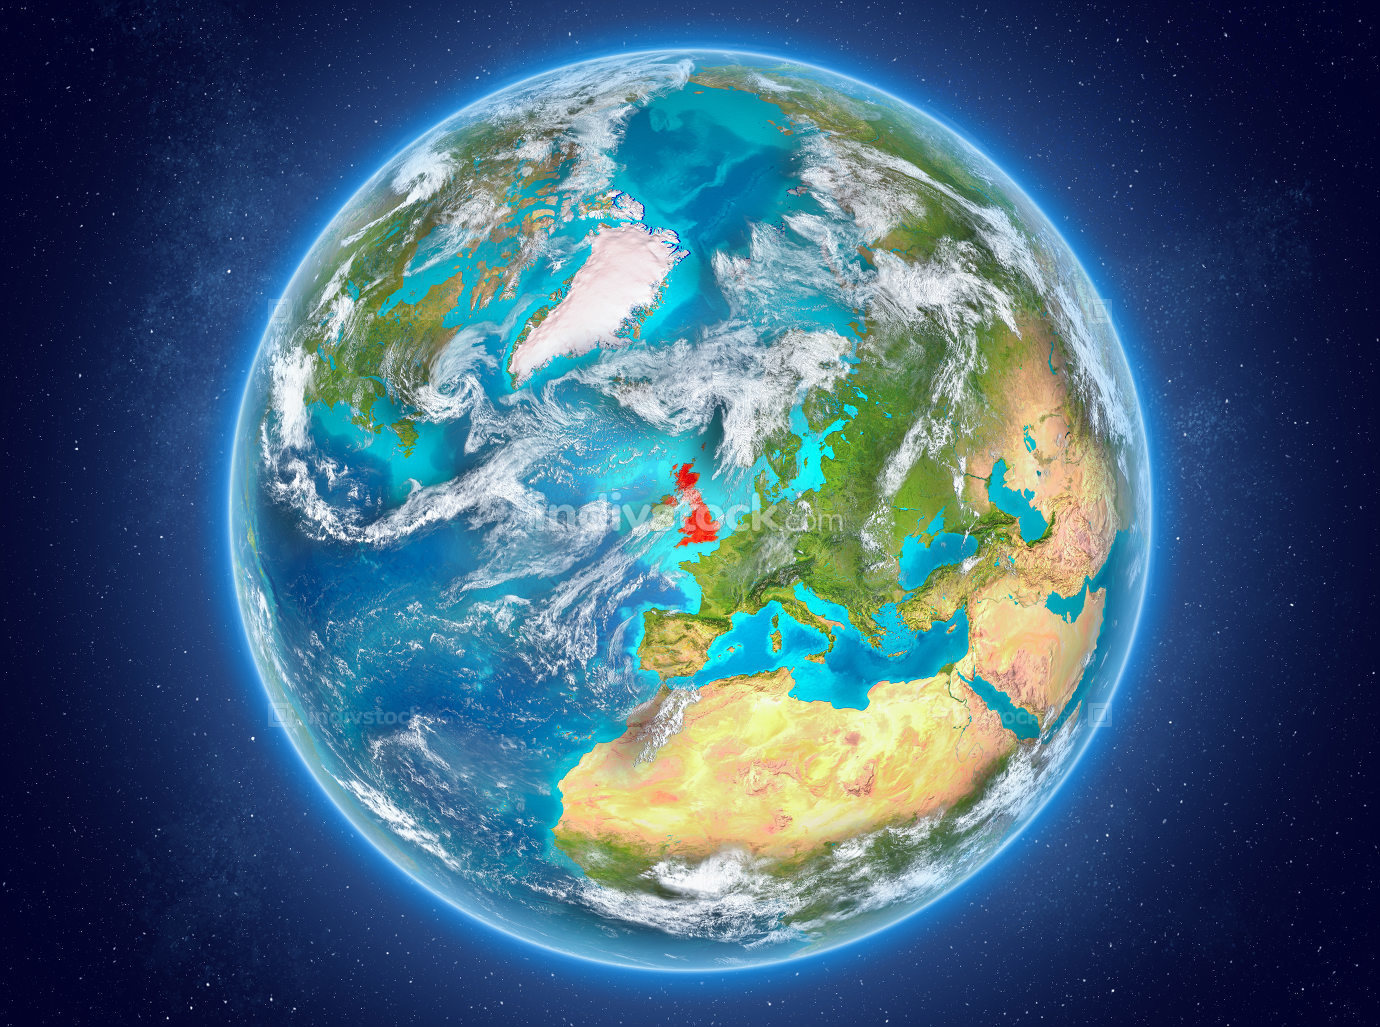 United Kingdom on planet Earth in space